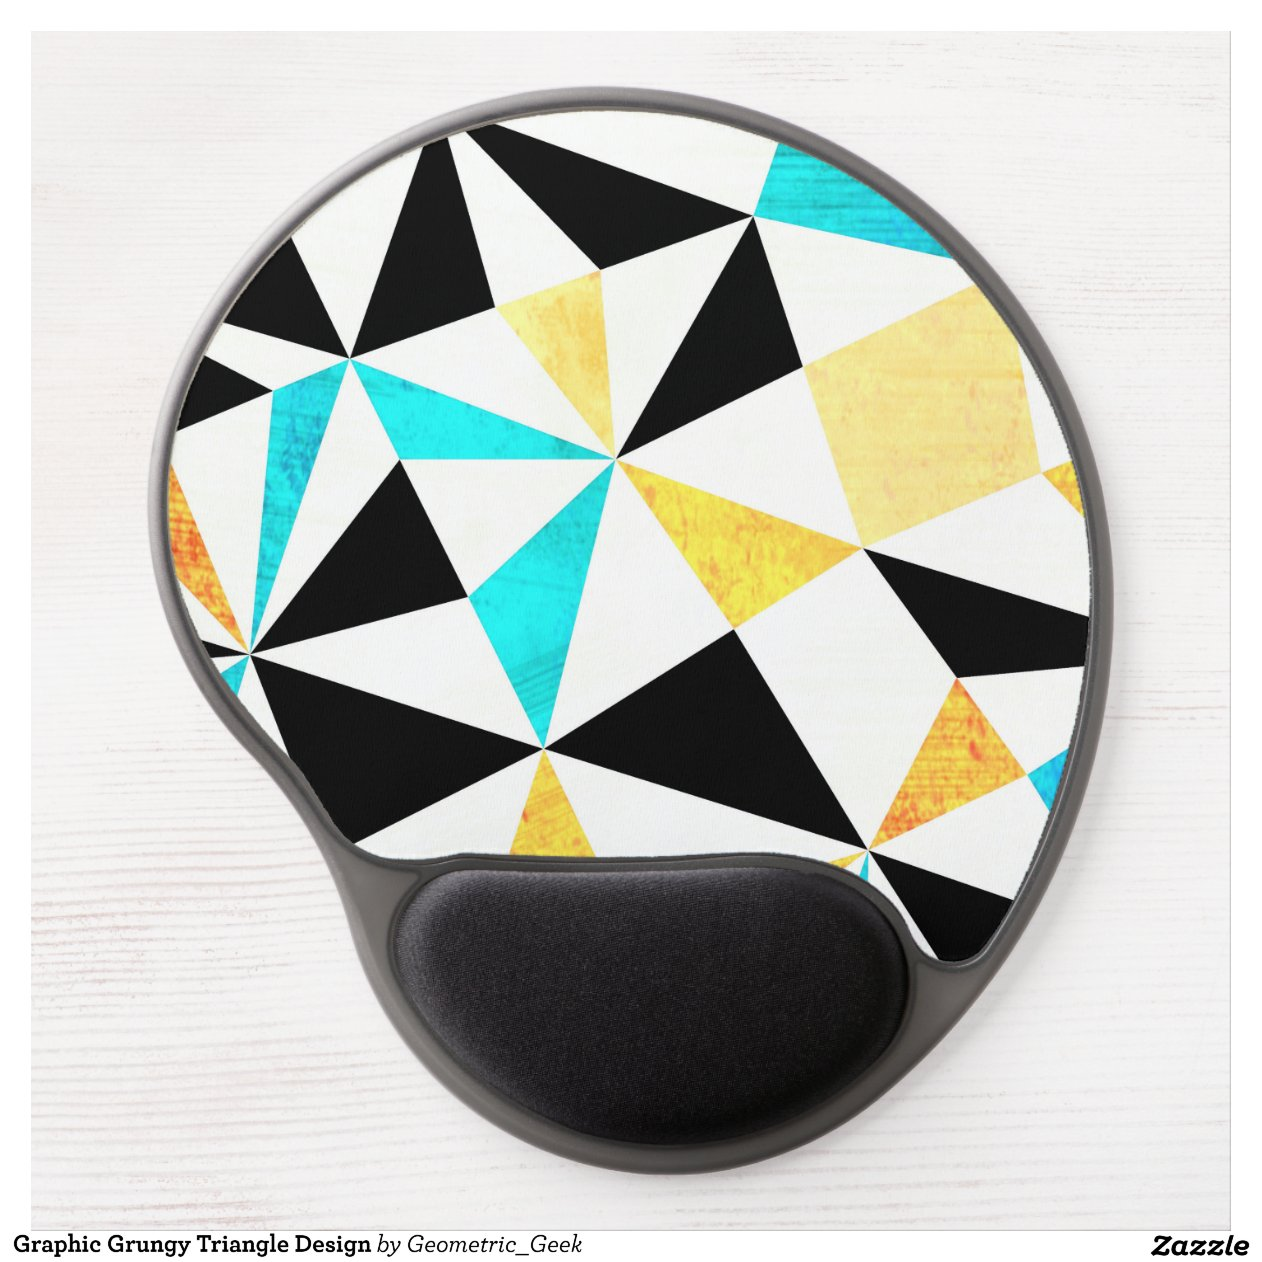 Geometric Design Working With 6 and 12